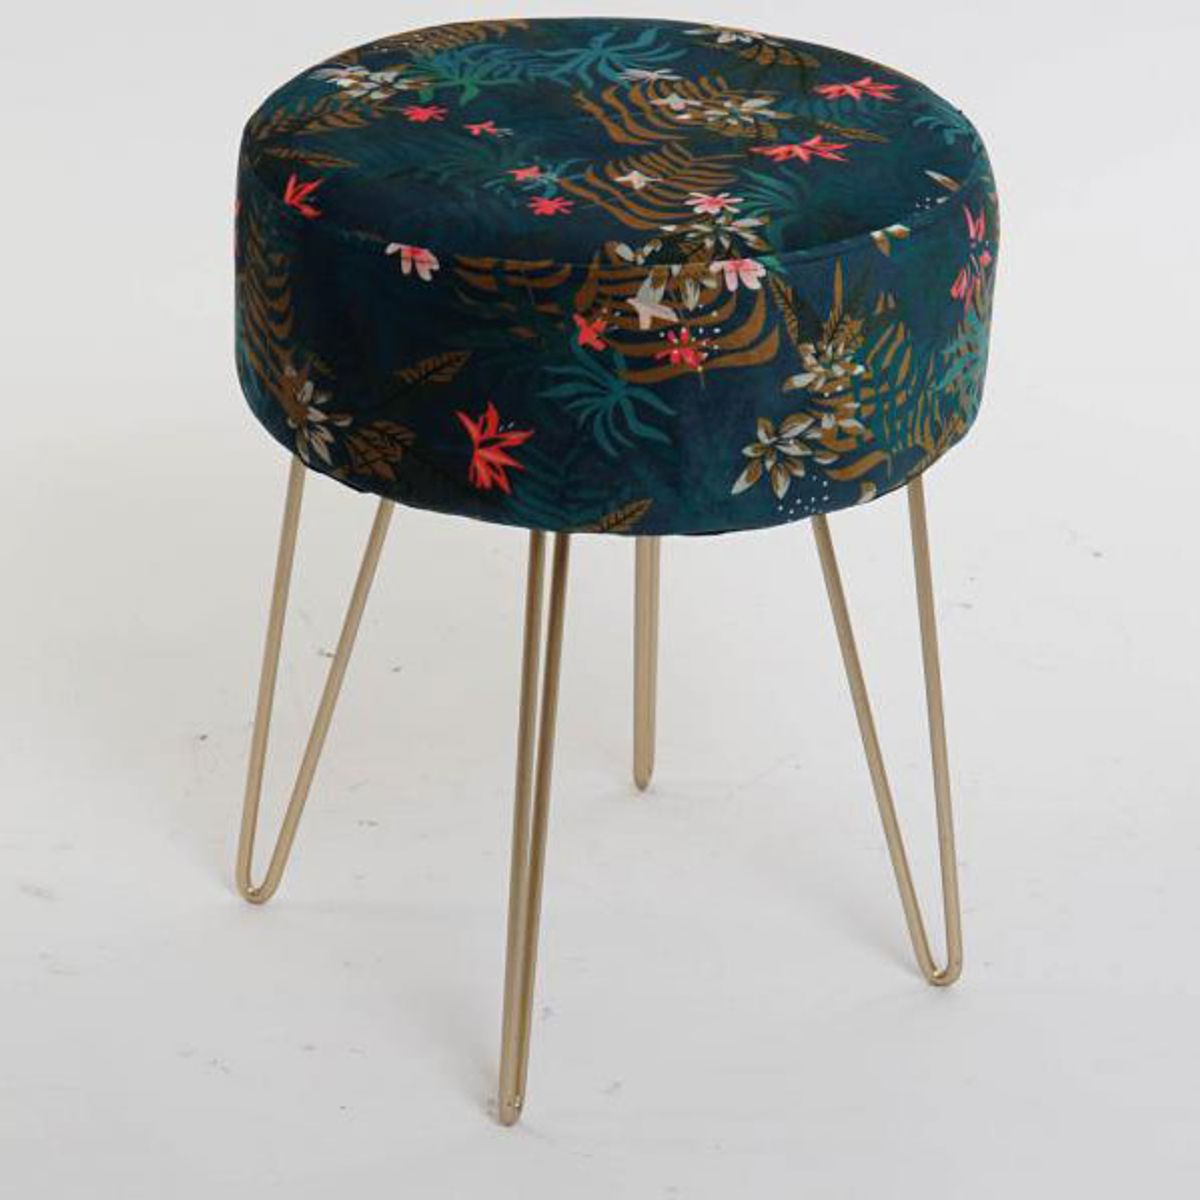 Tabouret velours imprimé tropical